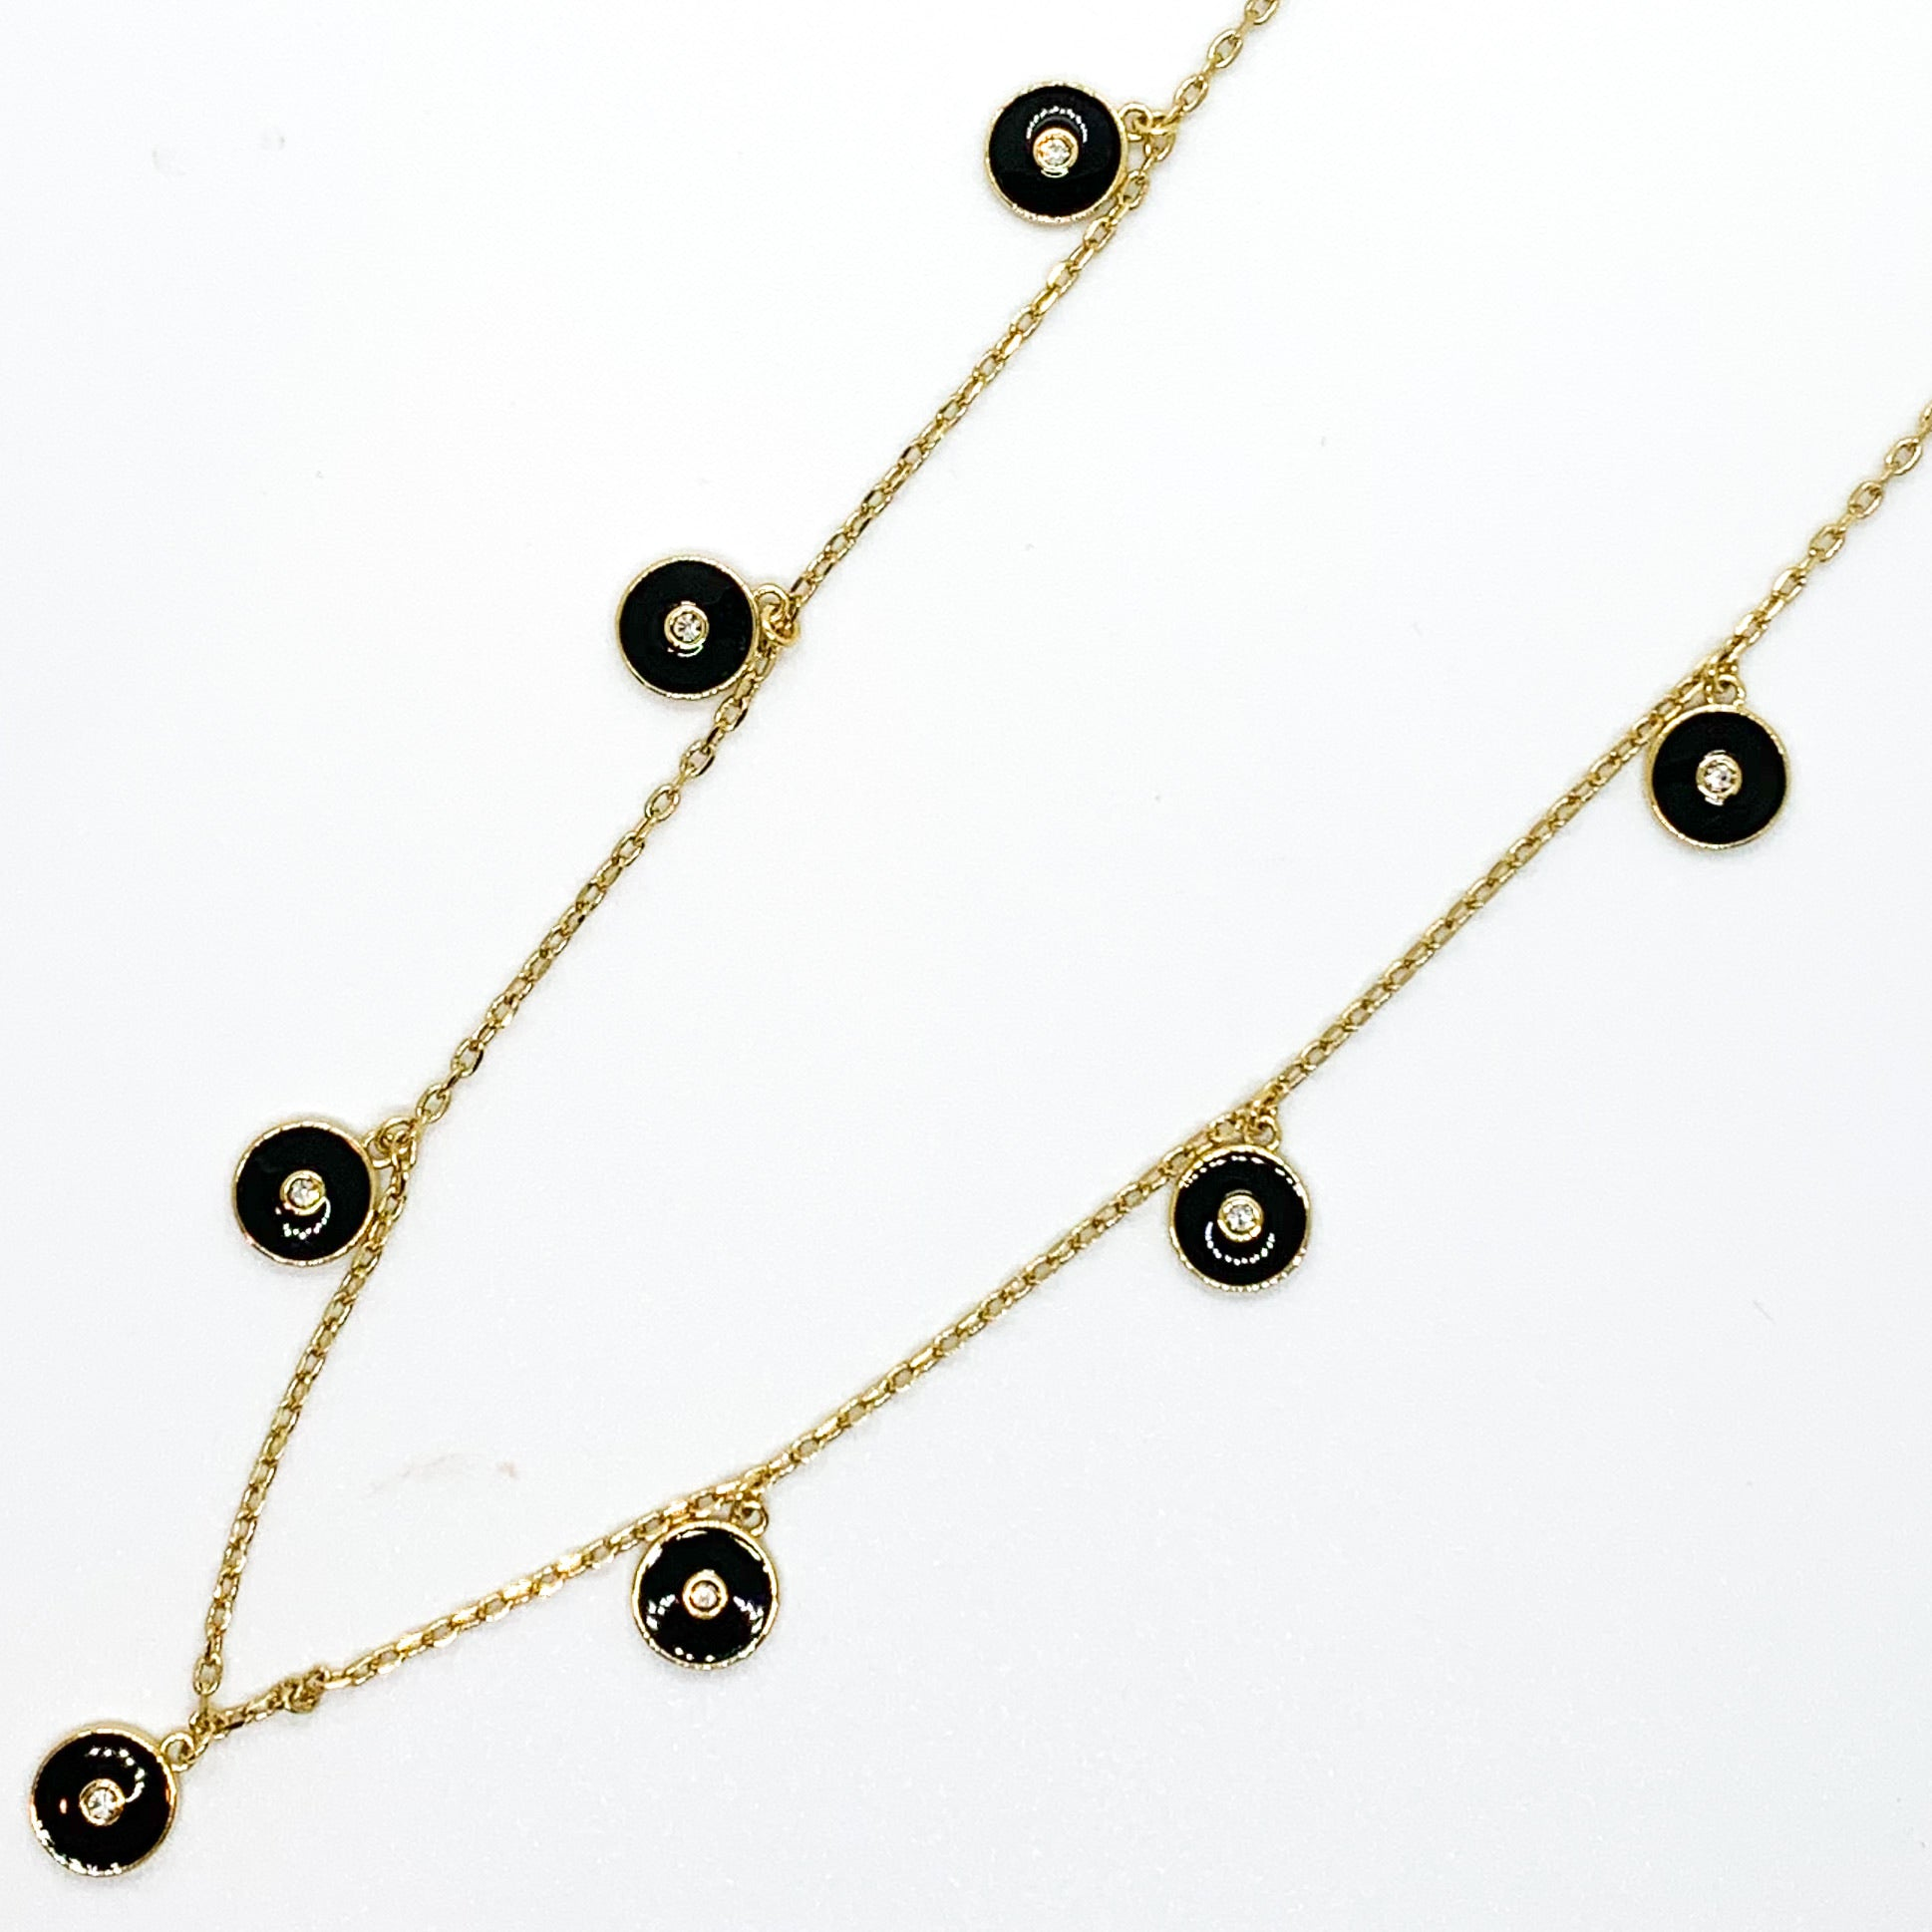 Round and Round Necklace - Black